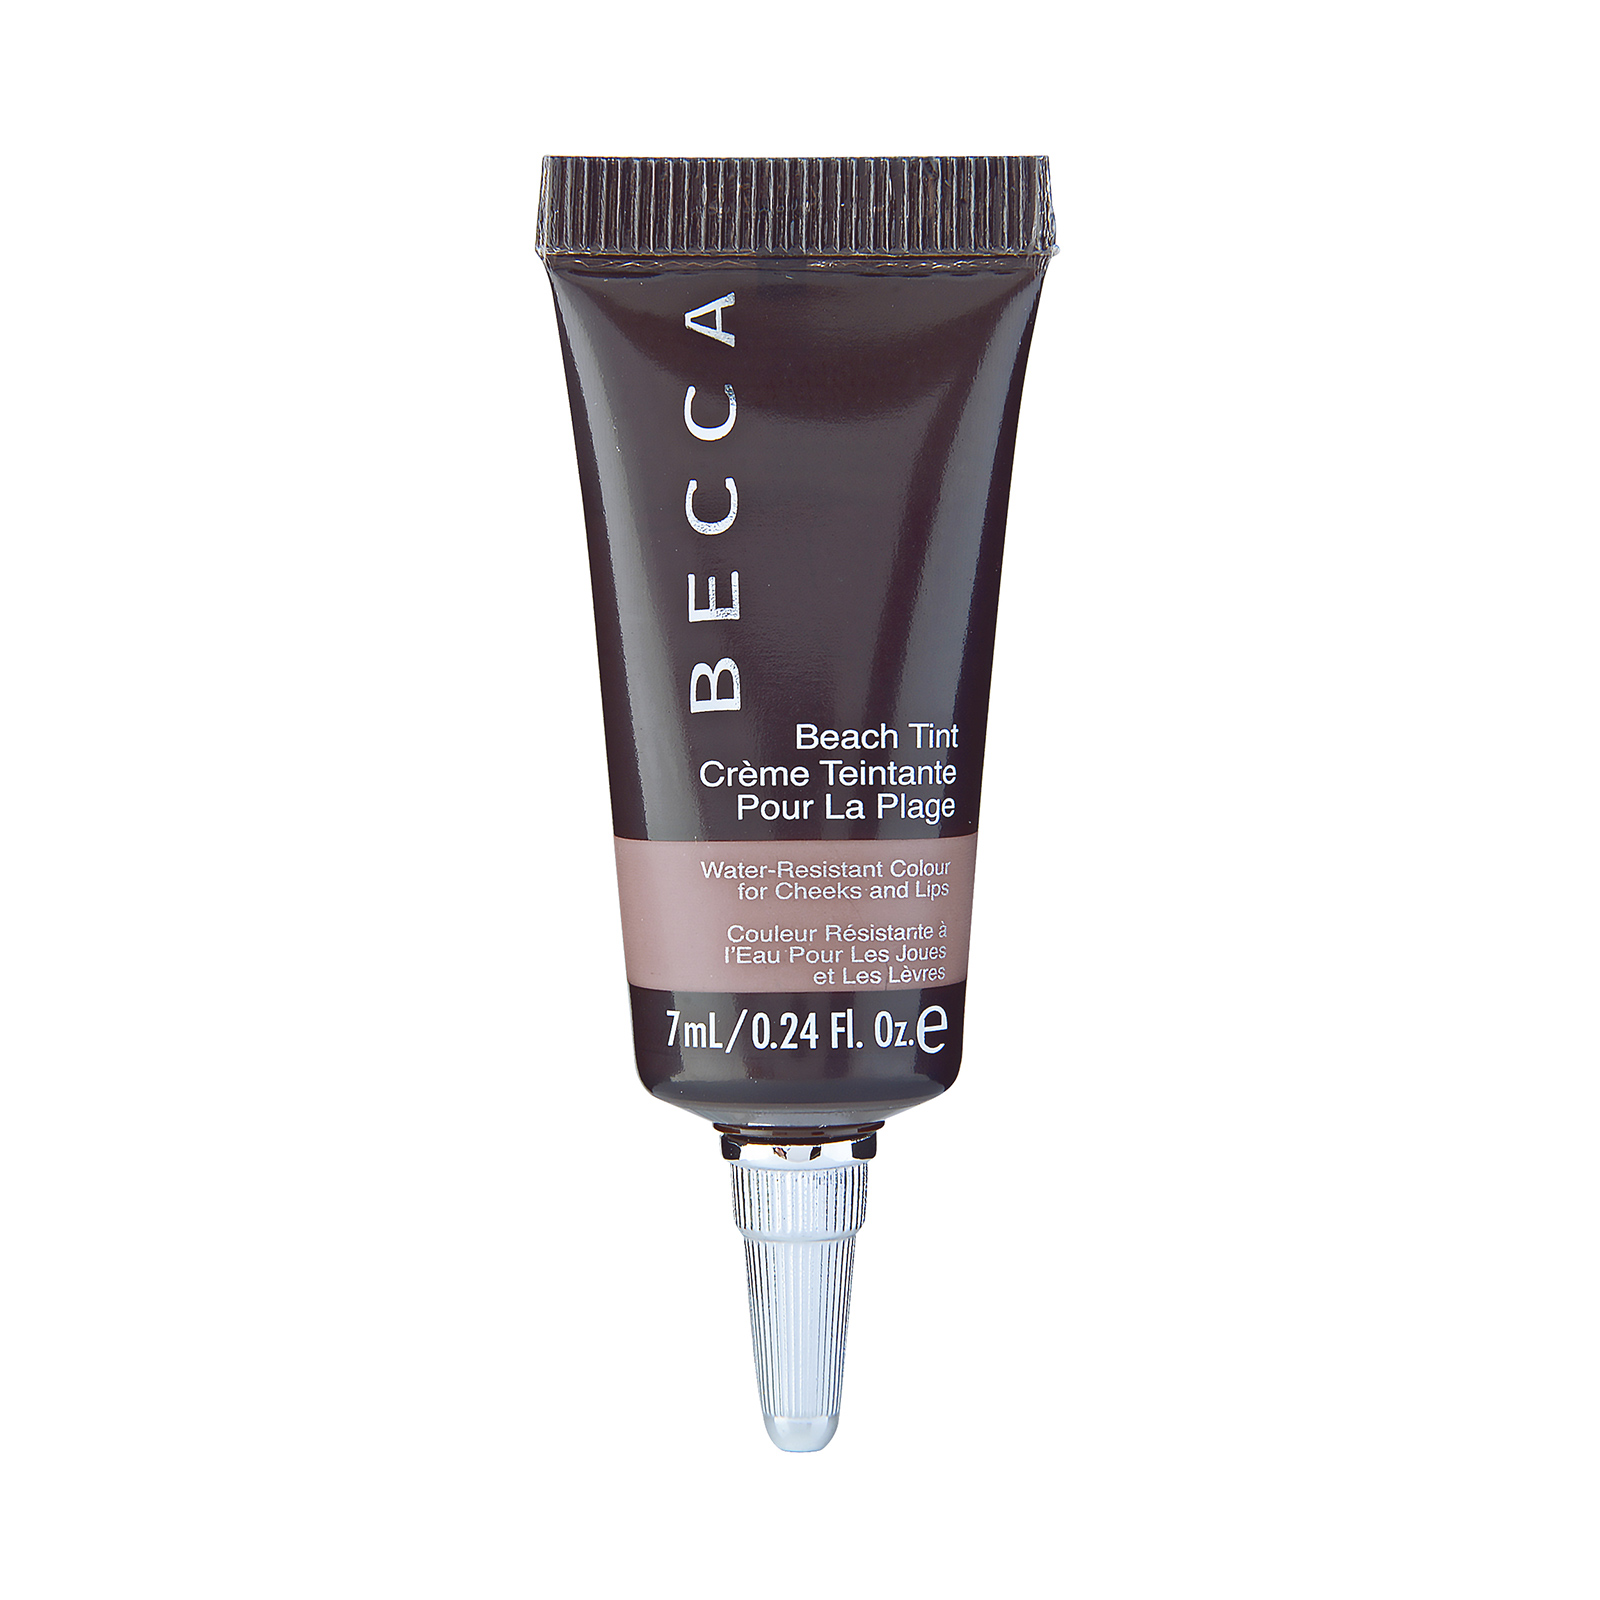 Becca Beach Tint Fig, 0.24oz, 7ml